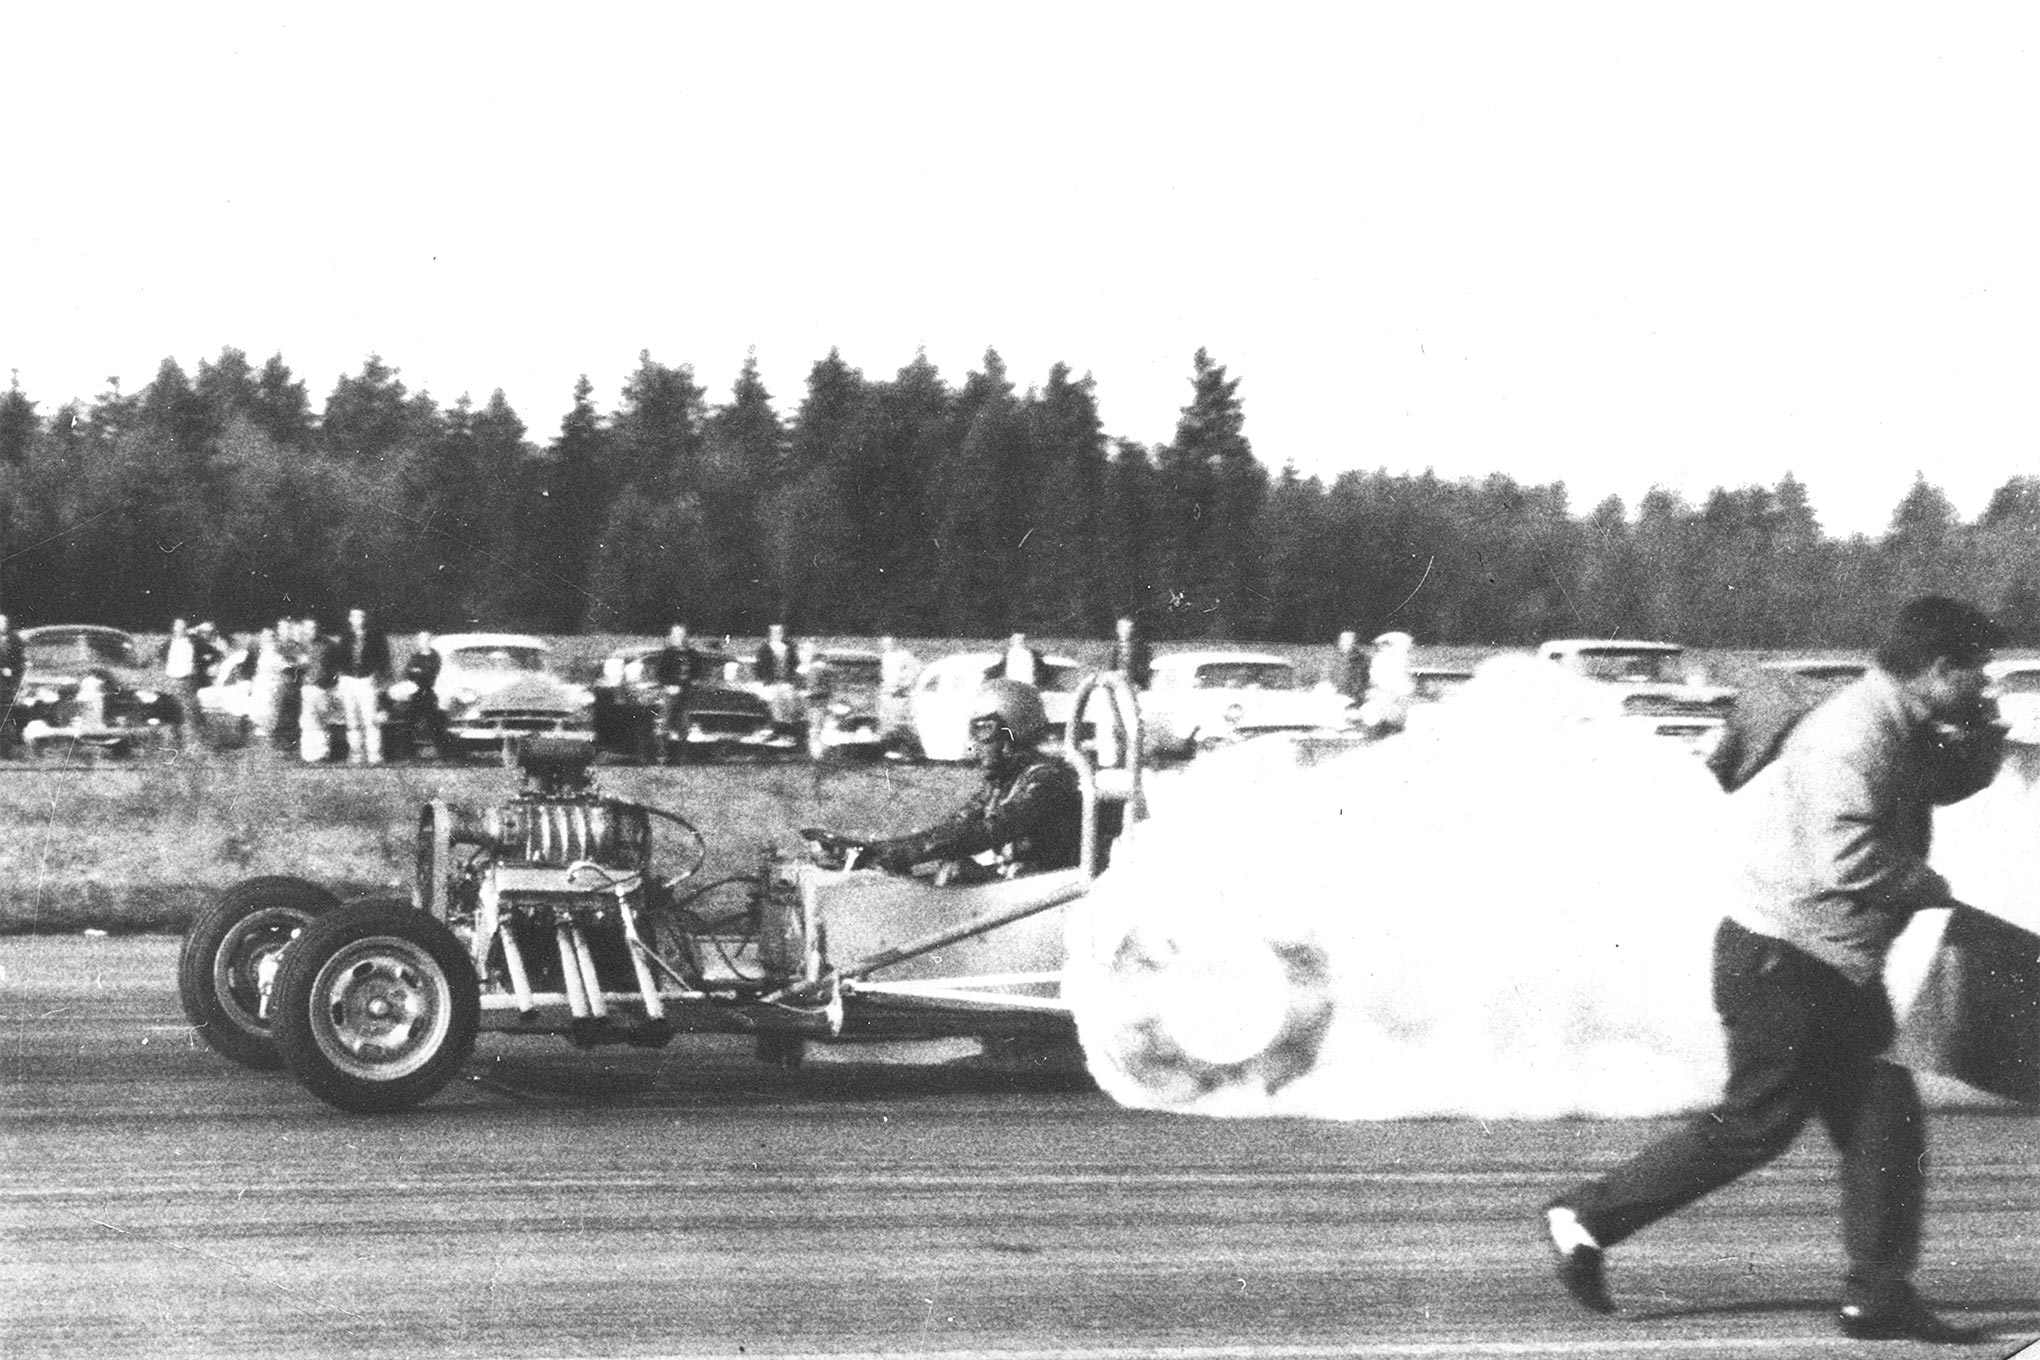 Bustle Bomb in Shelton, Washington, sometime in 1961. Note the gap between the cockpit and the front engine. Note that the front engine ran a 4-71 supercharger. Also note the higher roll hoop; like the Sleep Rocker, Bustle Bomb needed it to comply with rules.